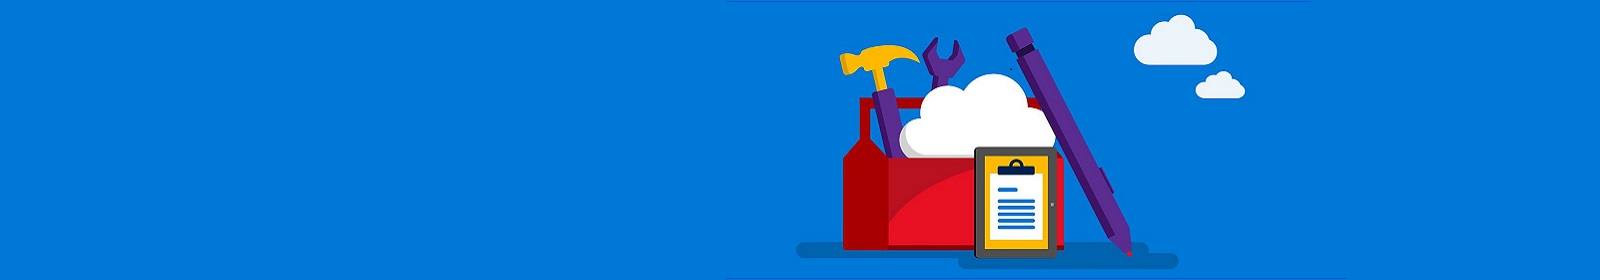 Partner Events and Training with cloud